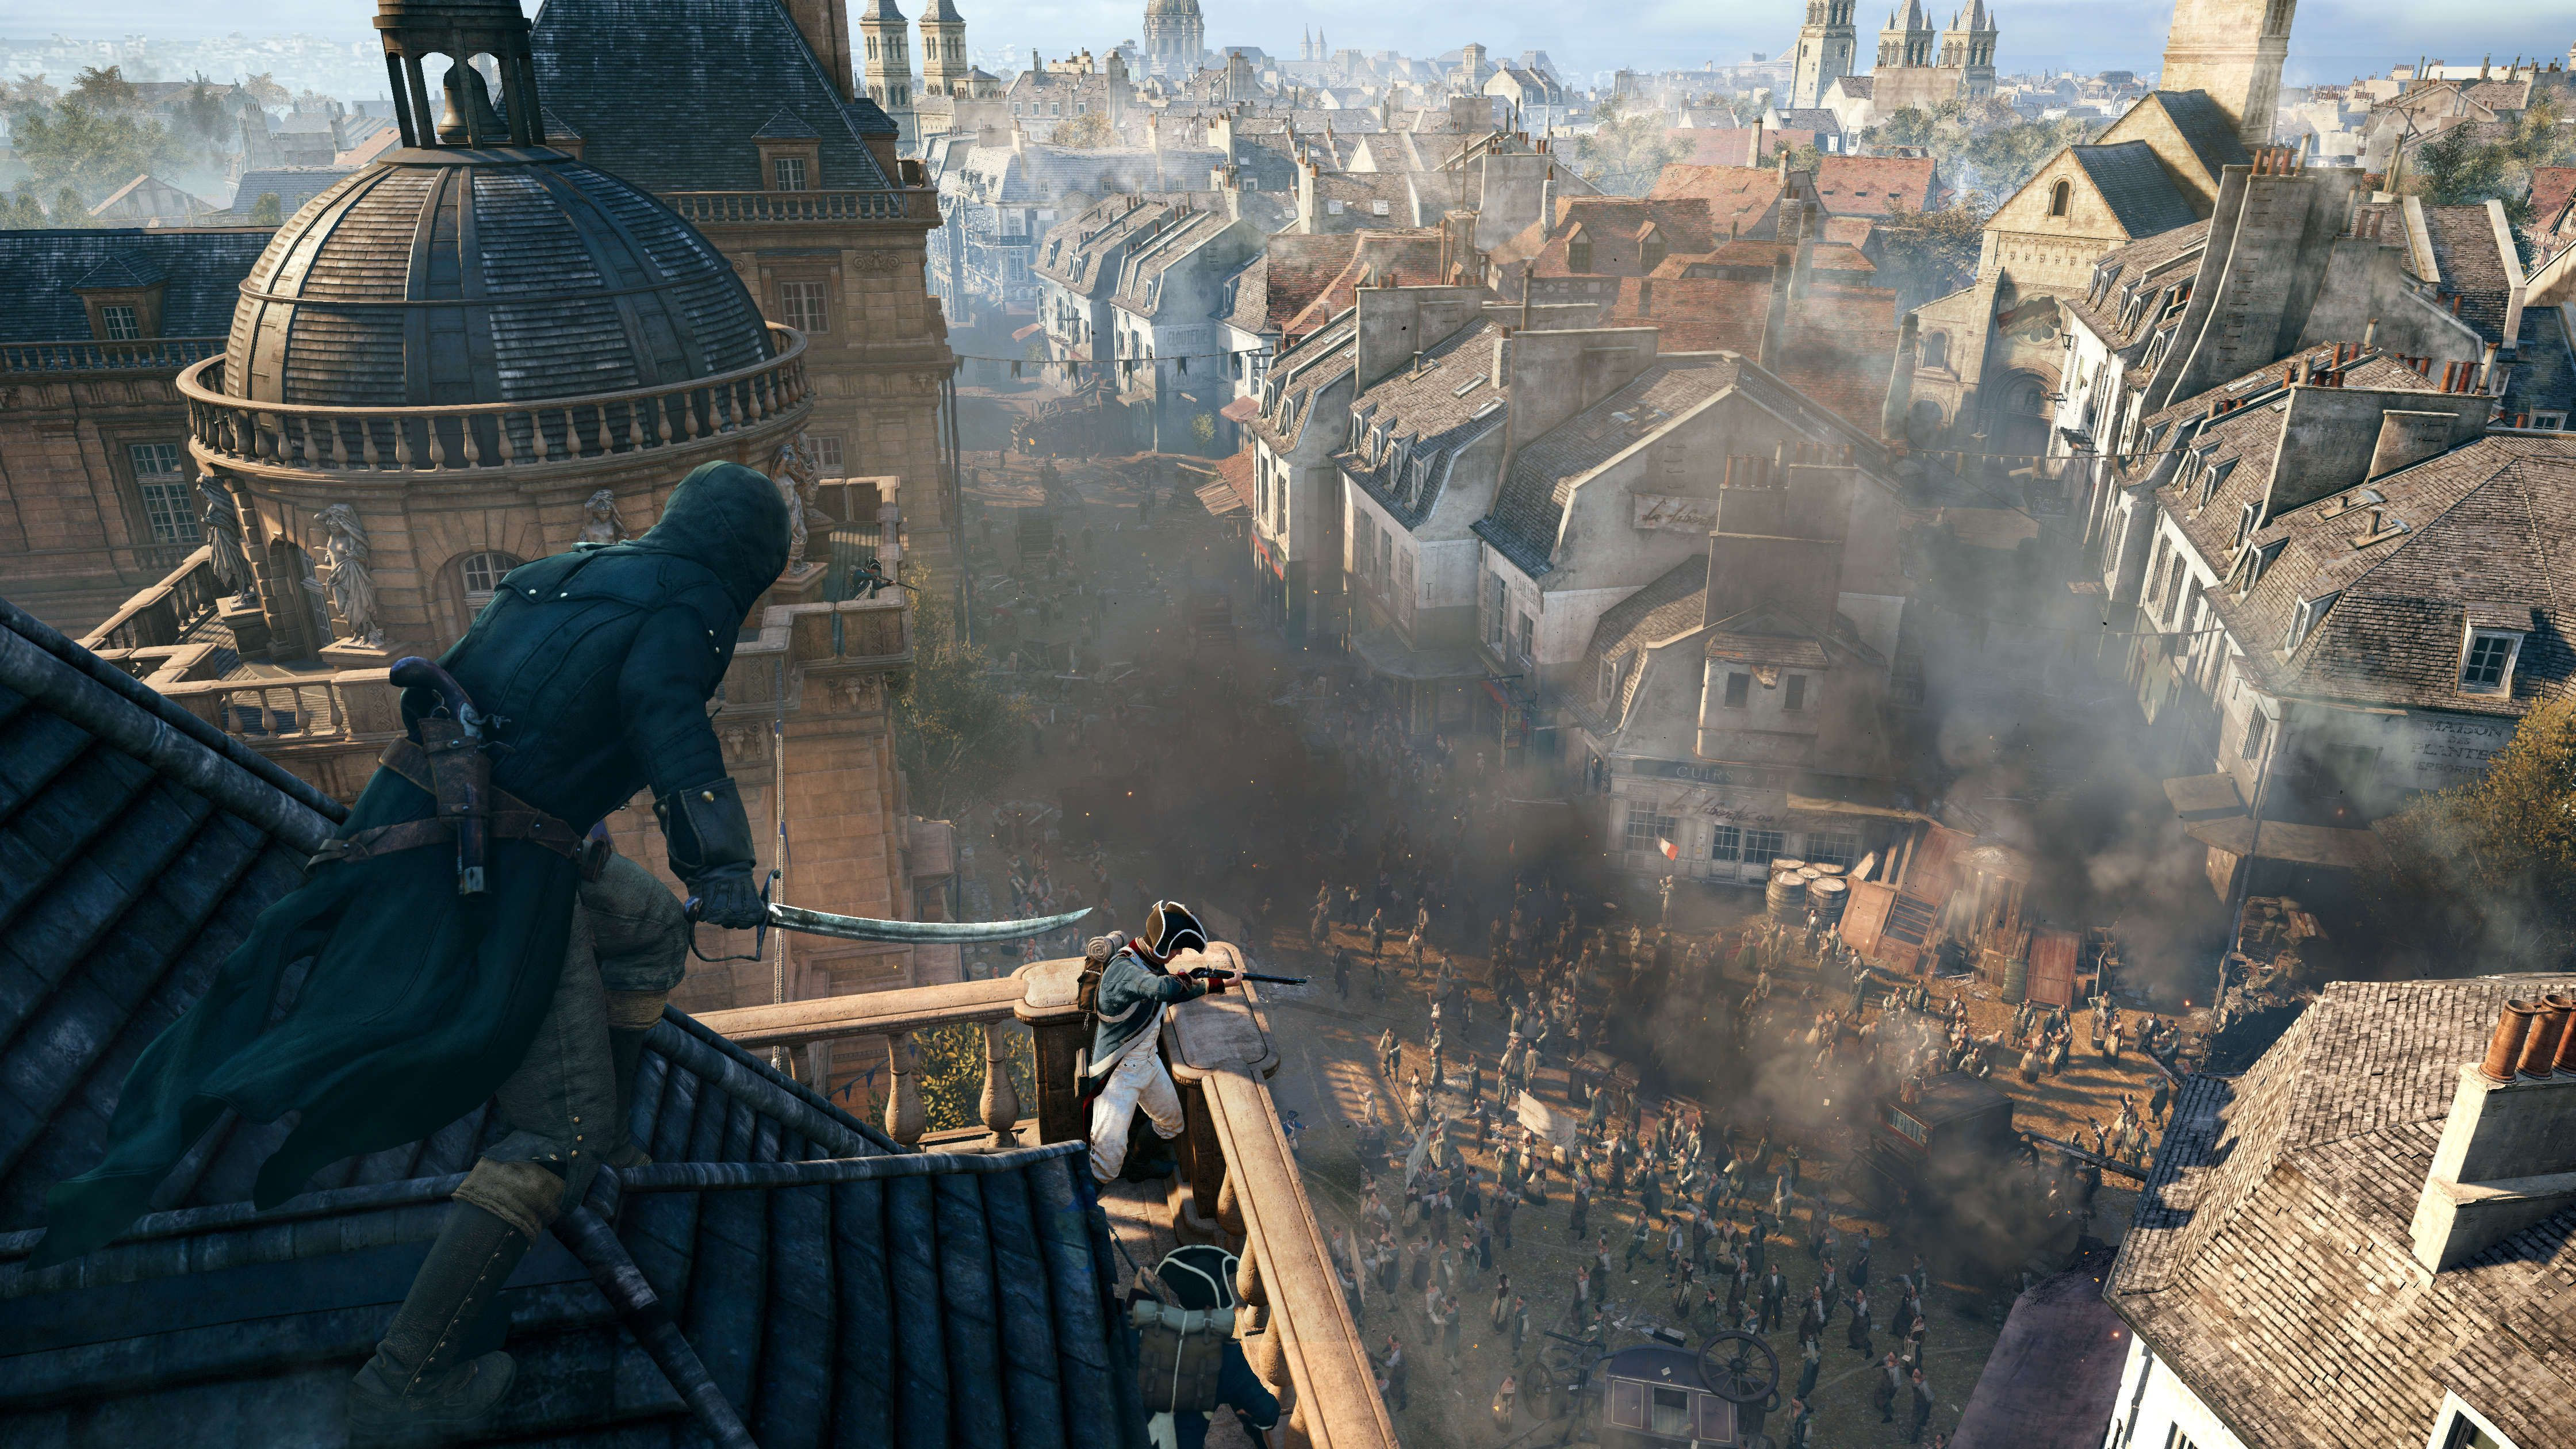 Image Result For Assassin S Creed Concept Art Assassins Creed